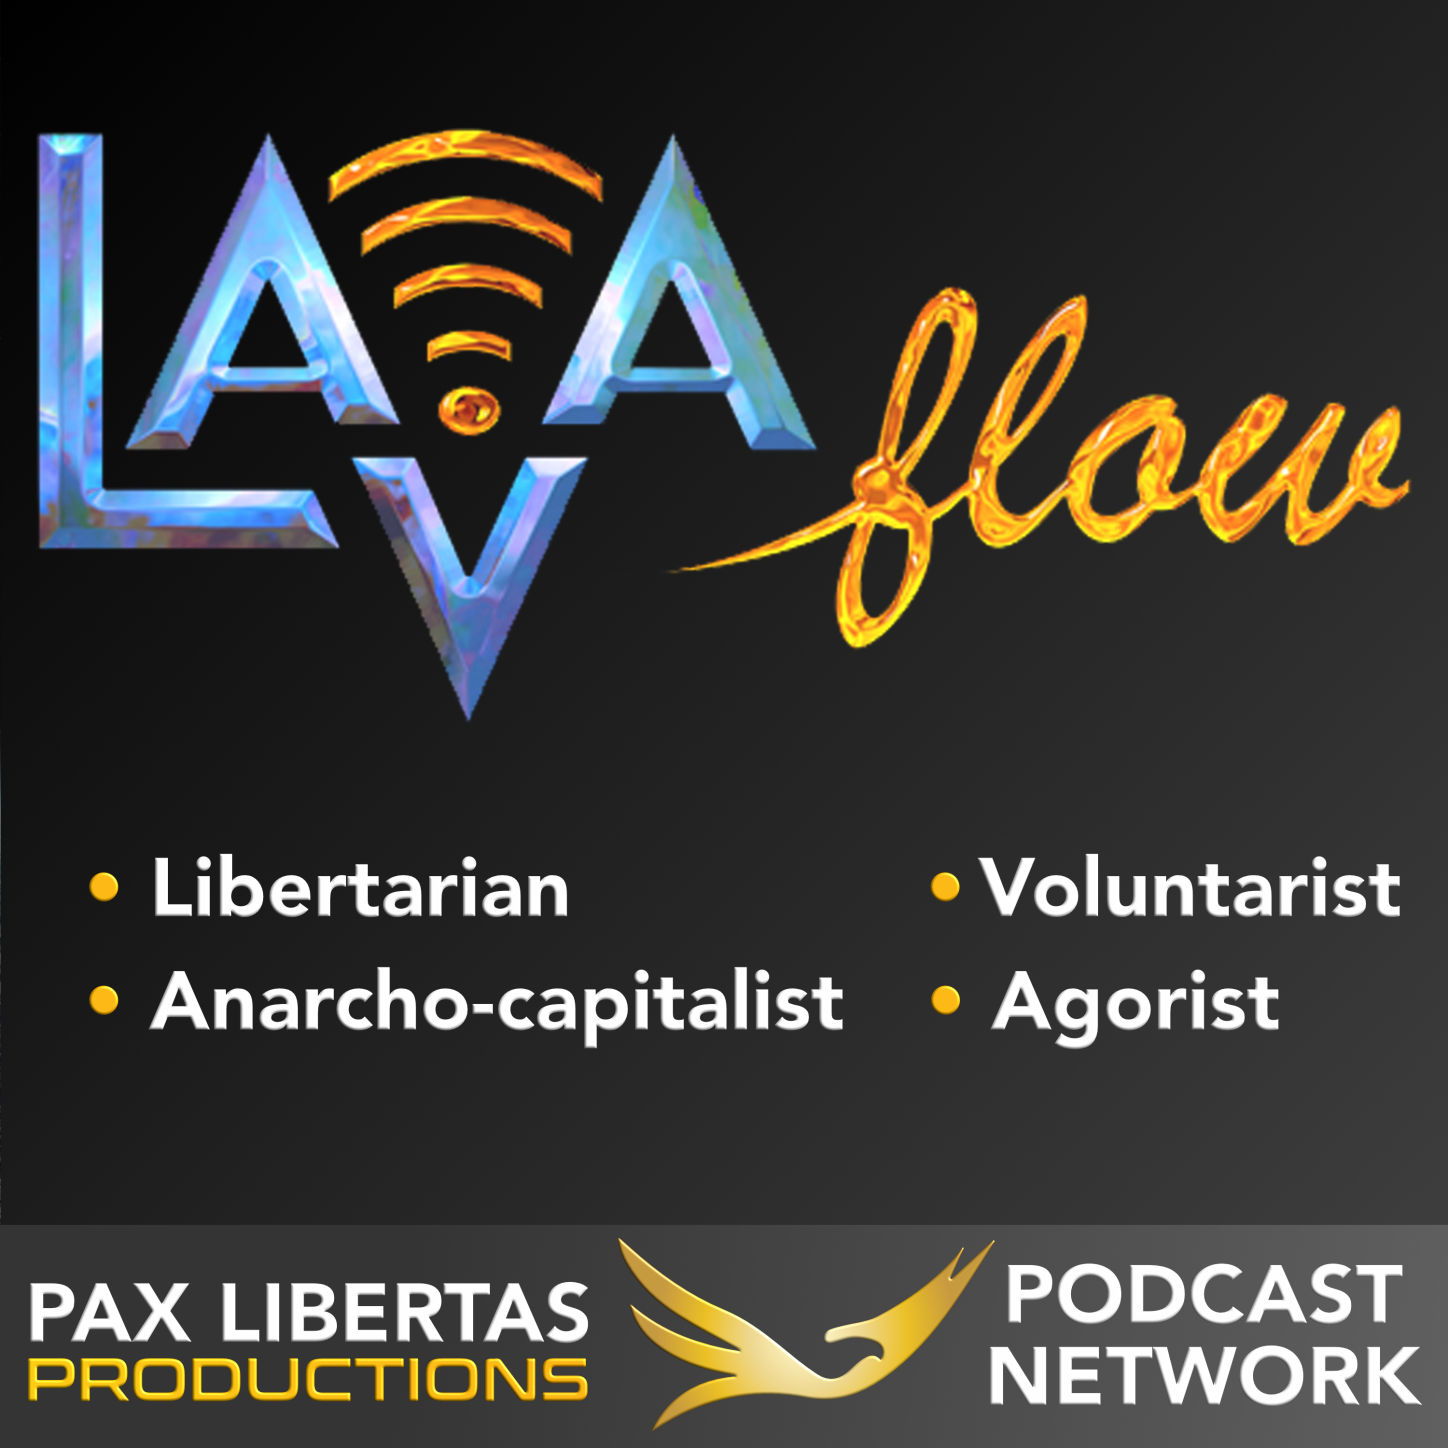 The LAVA Flow | Libertarian | Anarcho-capitalist | Voluntaryist | Agorist show art